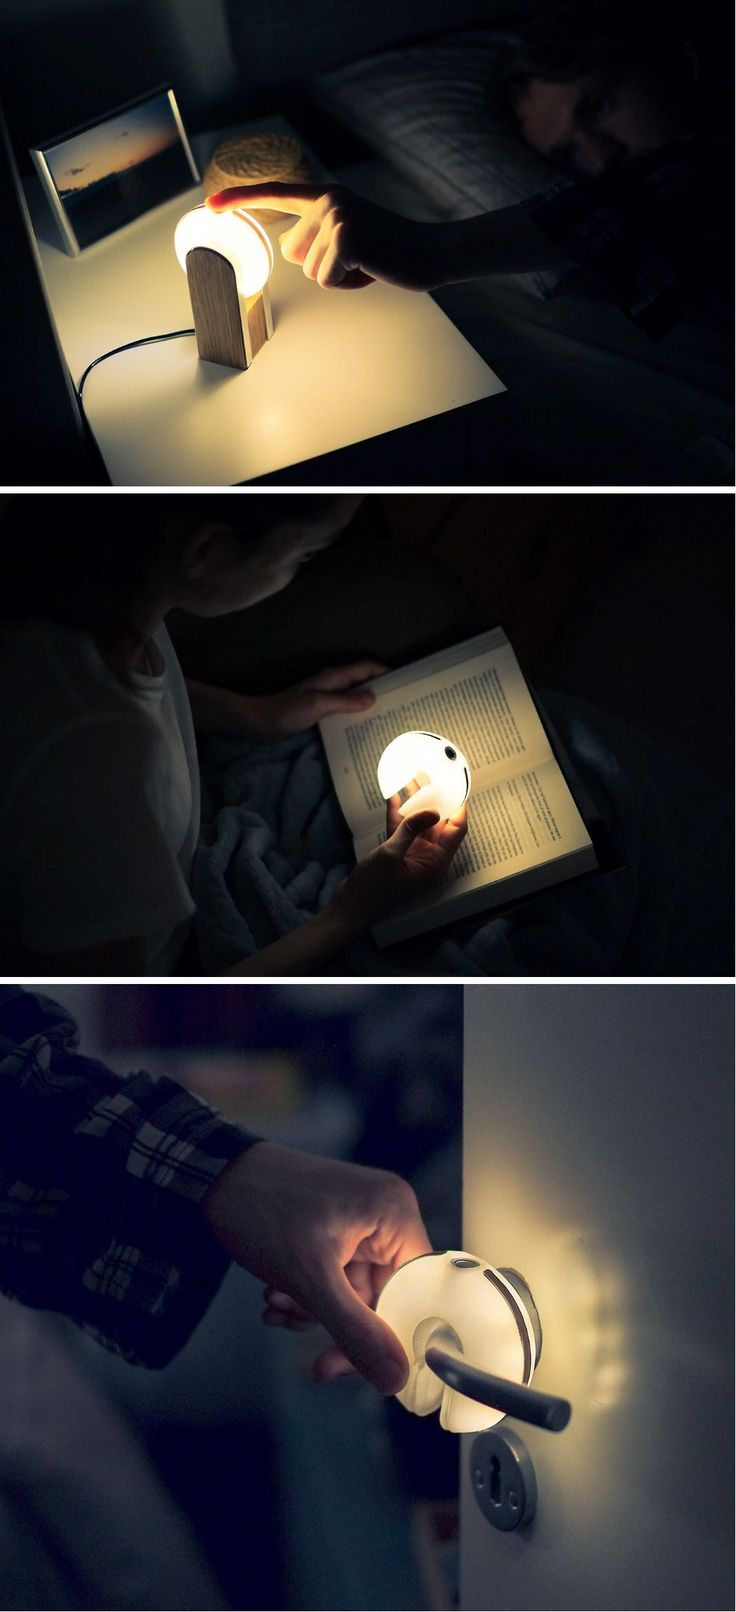 Donut shape ambient light that can even dock on railings or handles.